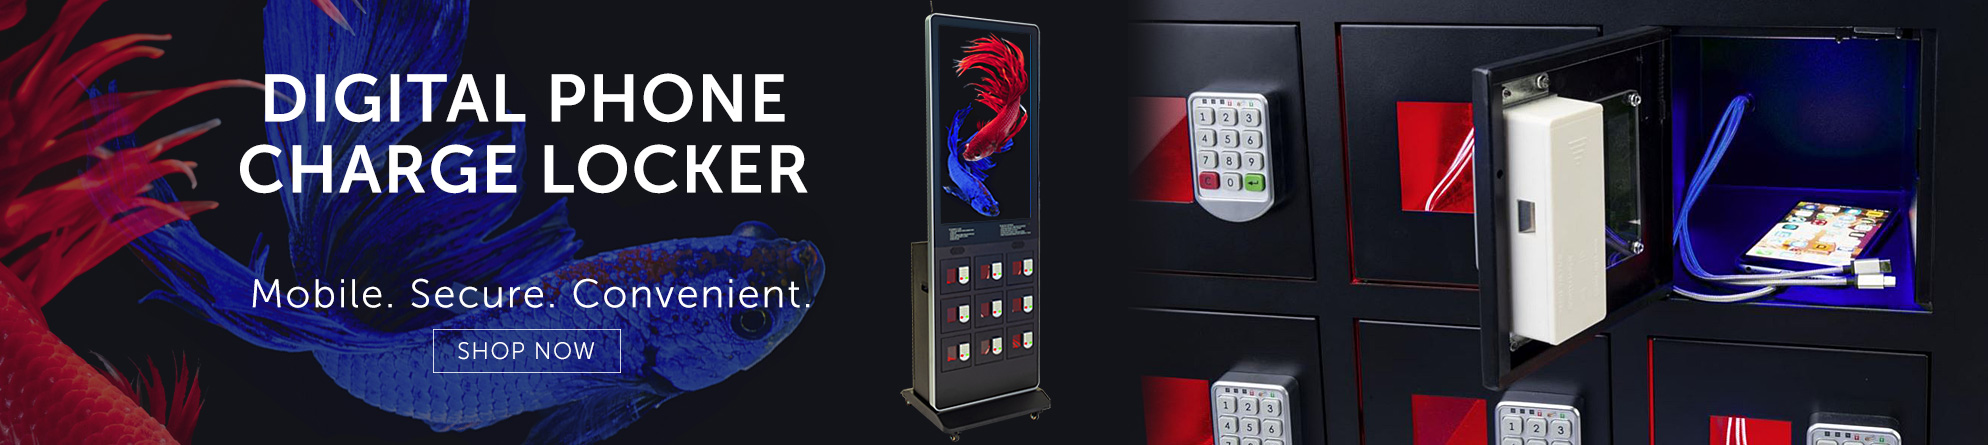 Offer visitors a chance to recharge their mobile devices inside a lockable digital phone charge cabinet